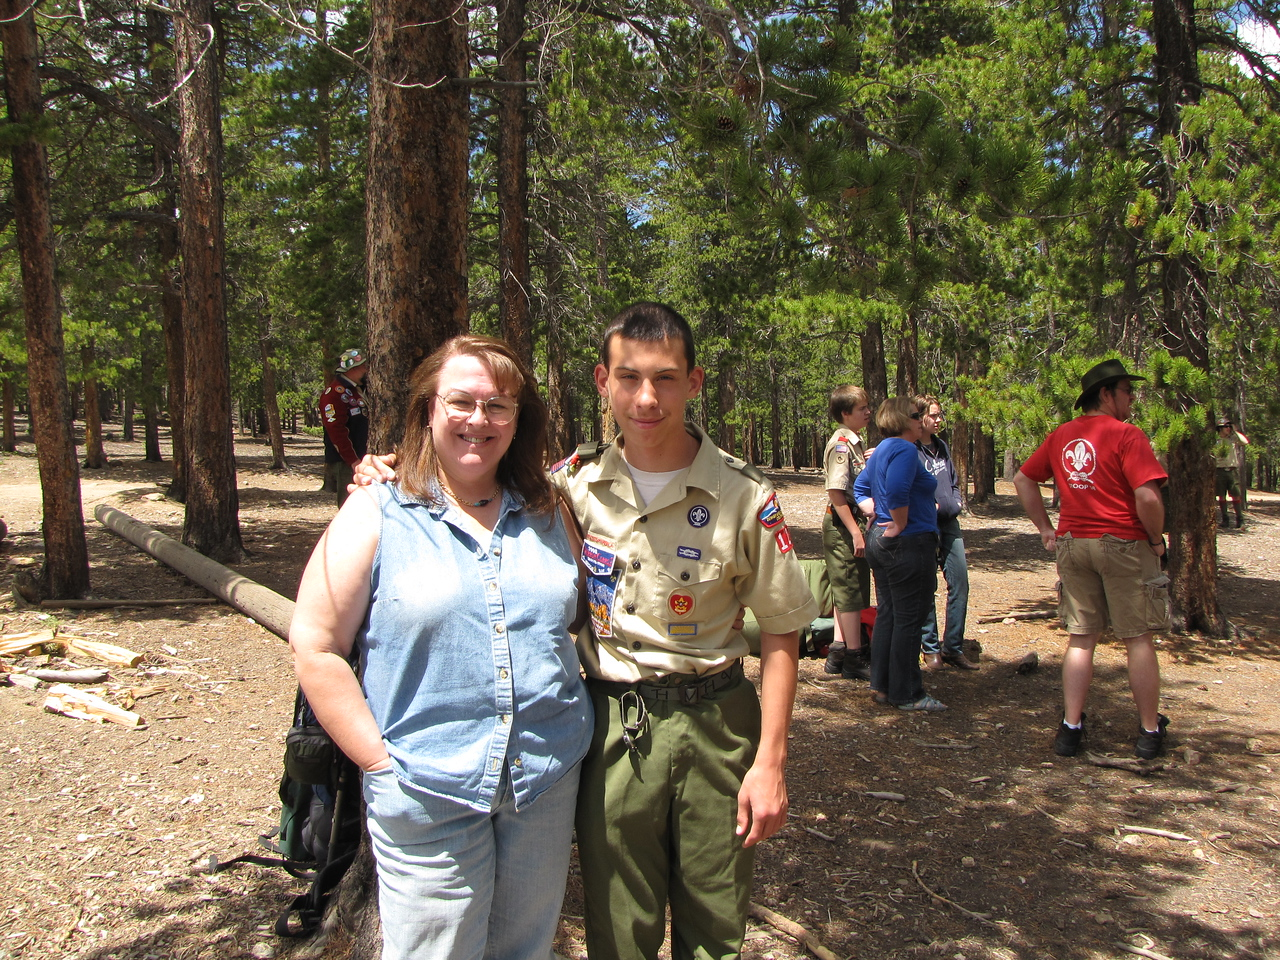 Carol and Sean by the Boy Scout Camp